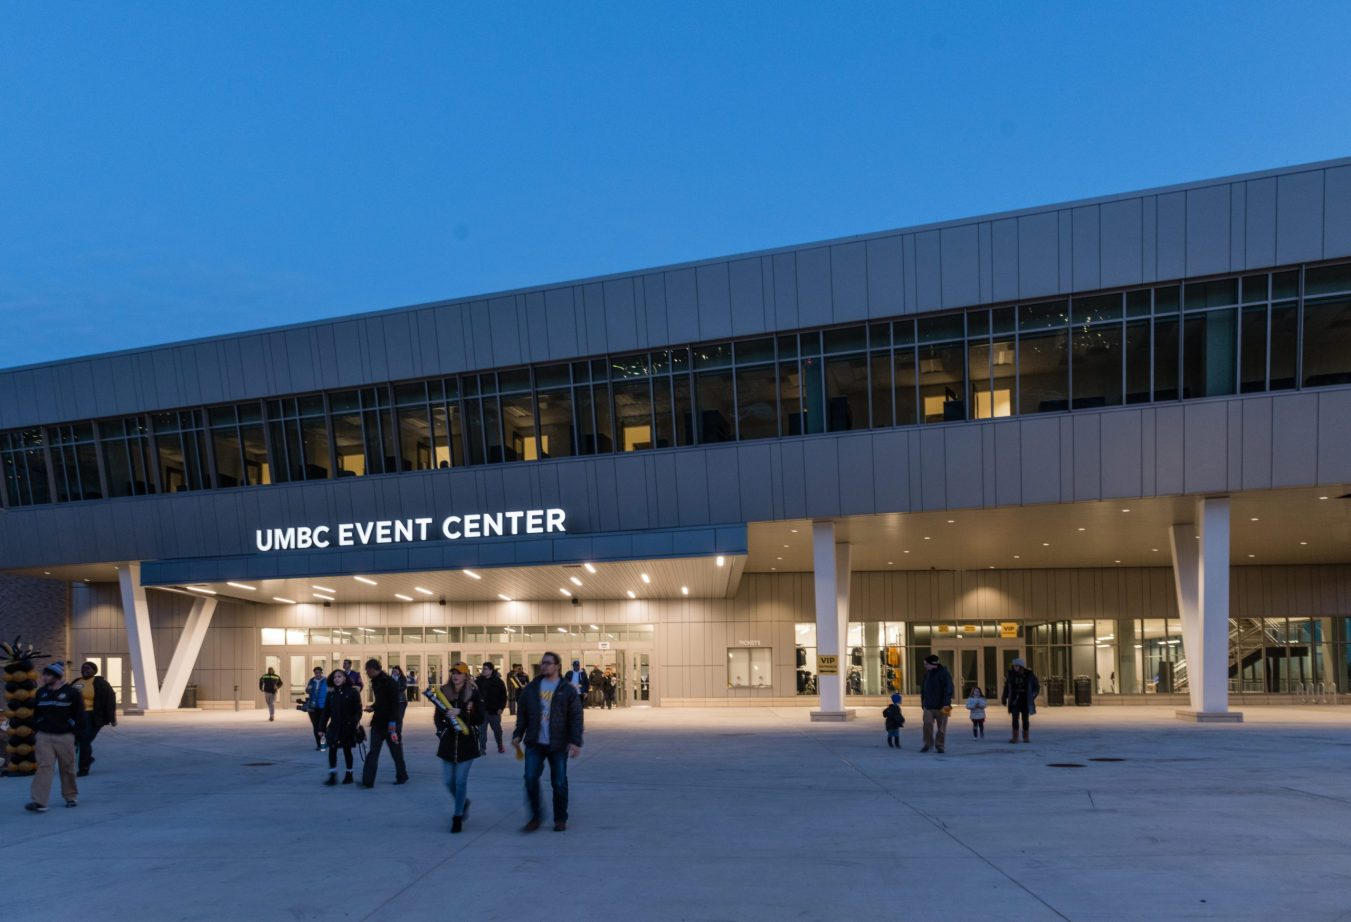 Crowds entering the main entrance of the UMBC event center